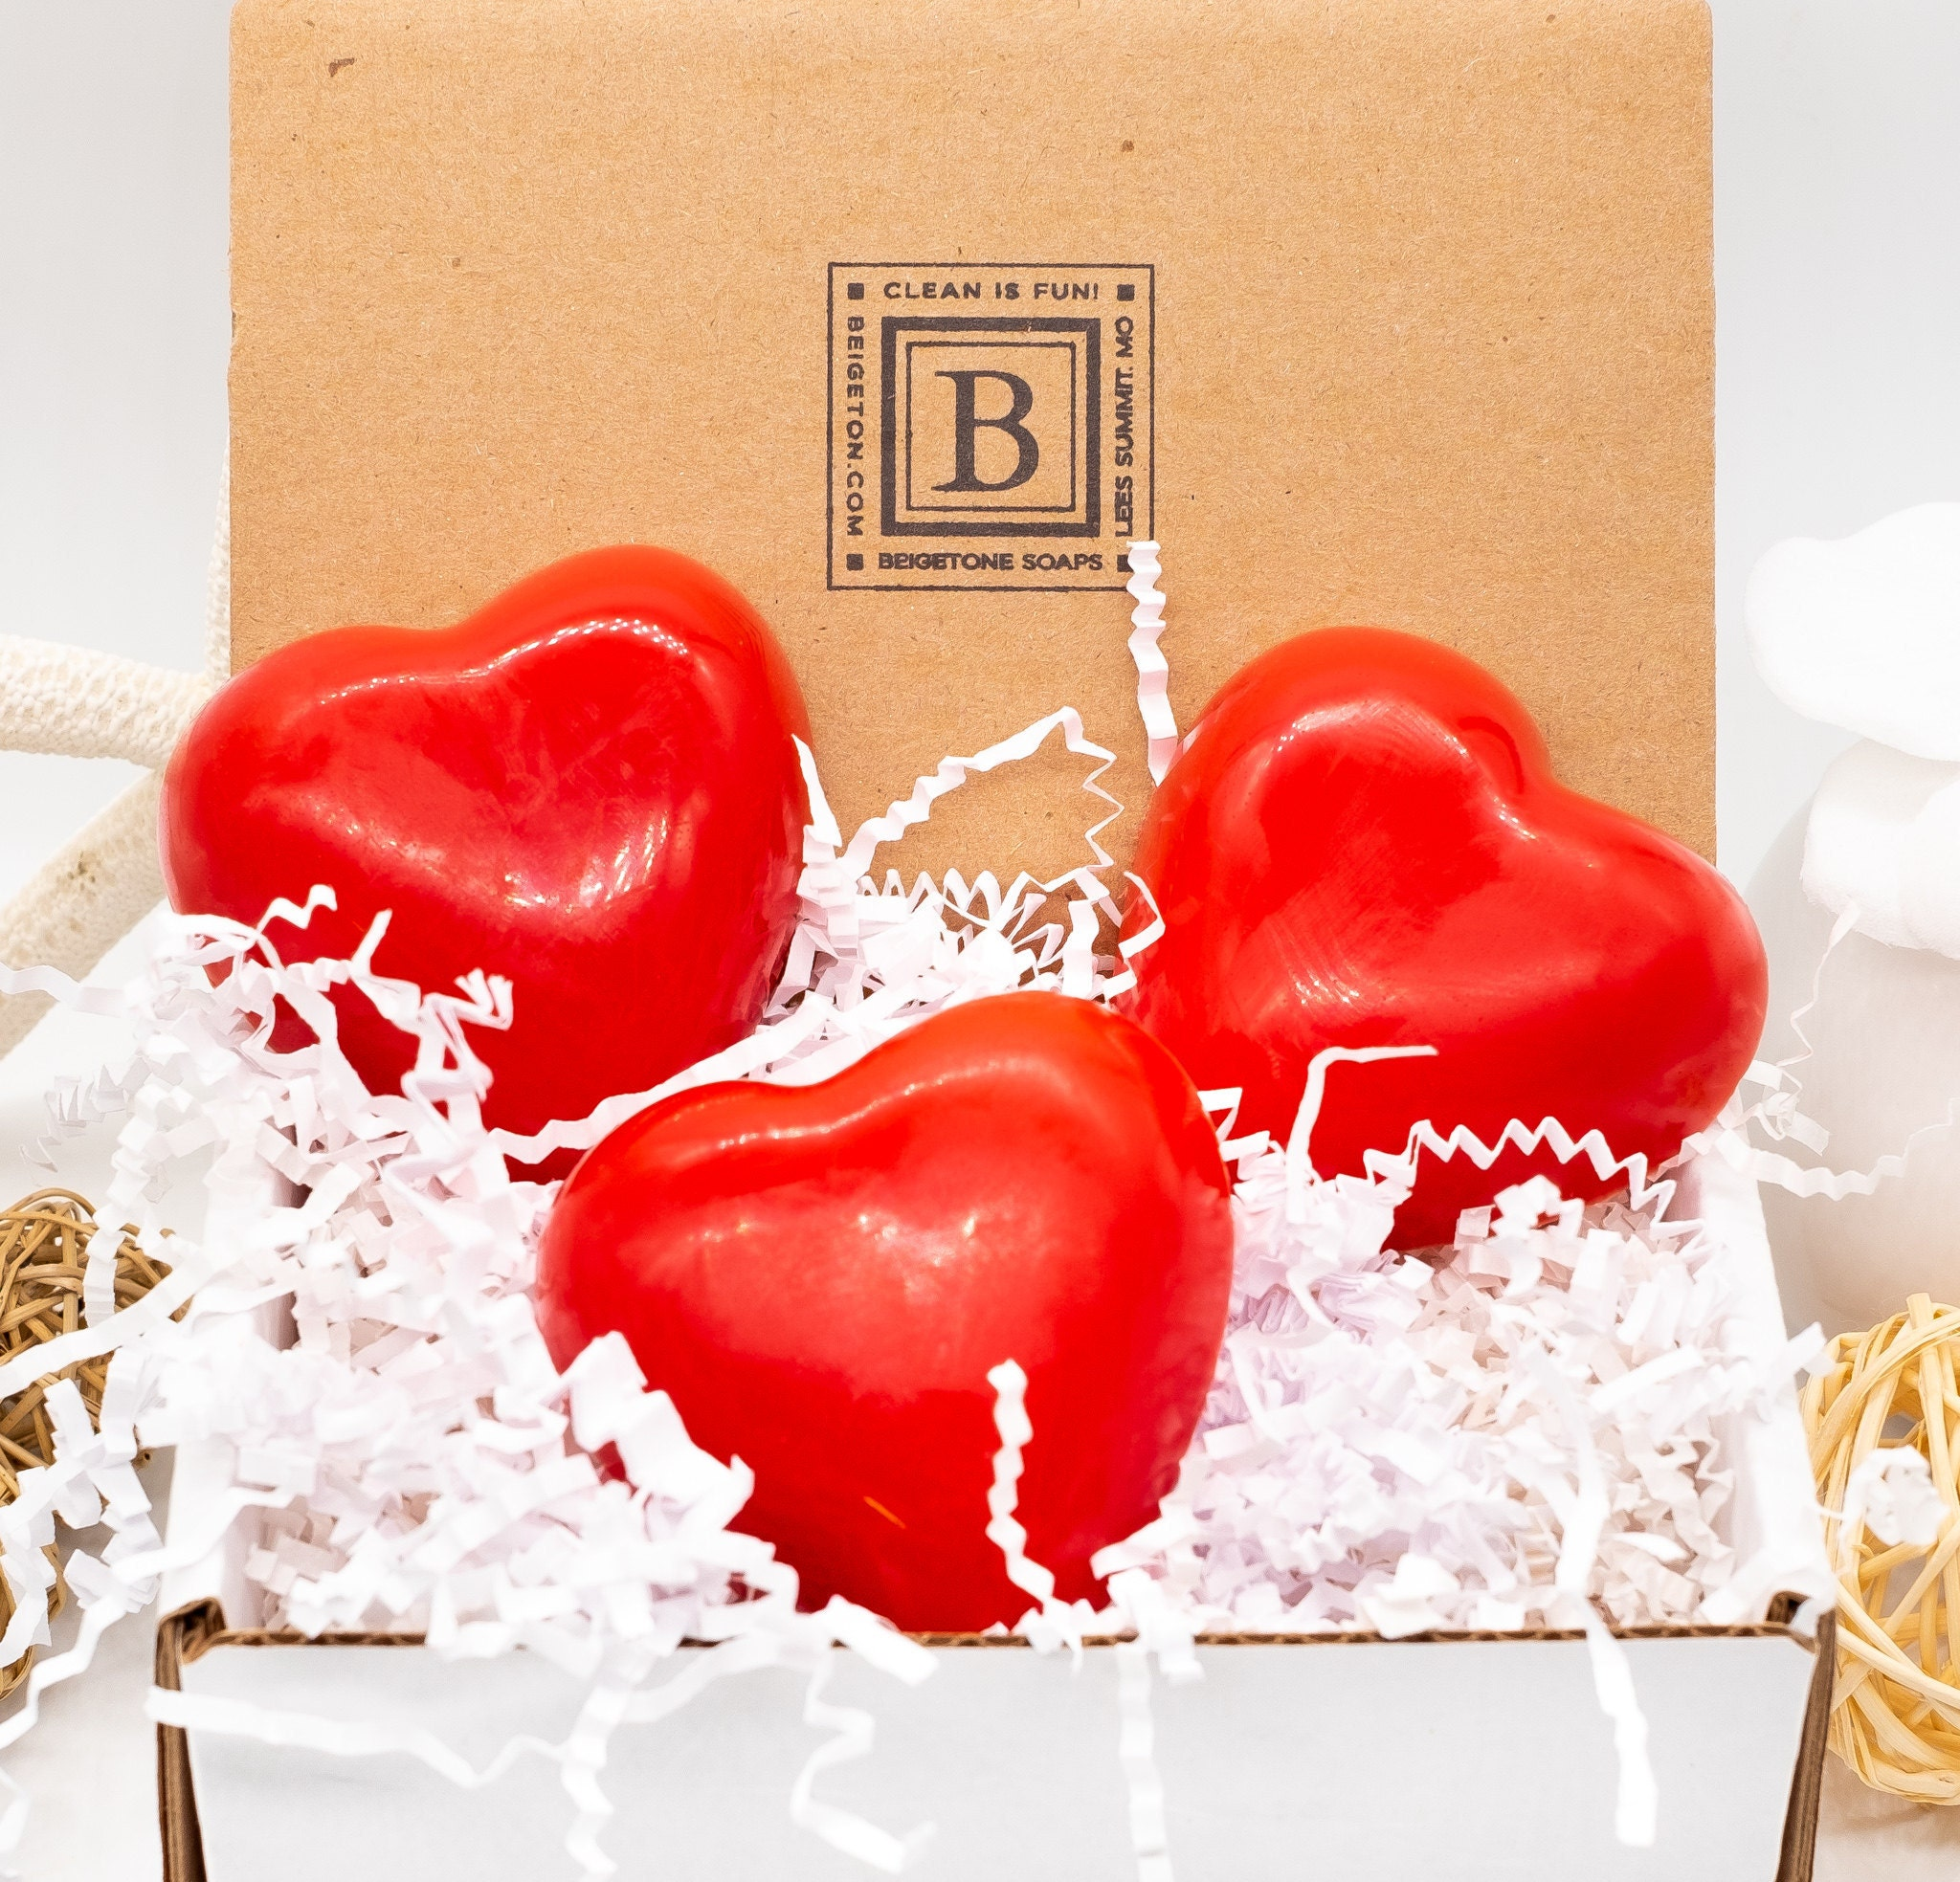 3 Red Heart Soaps